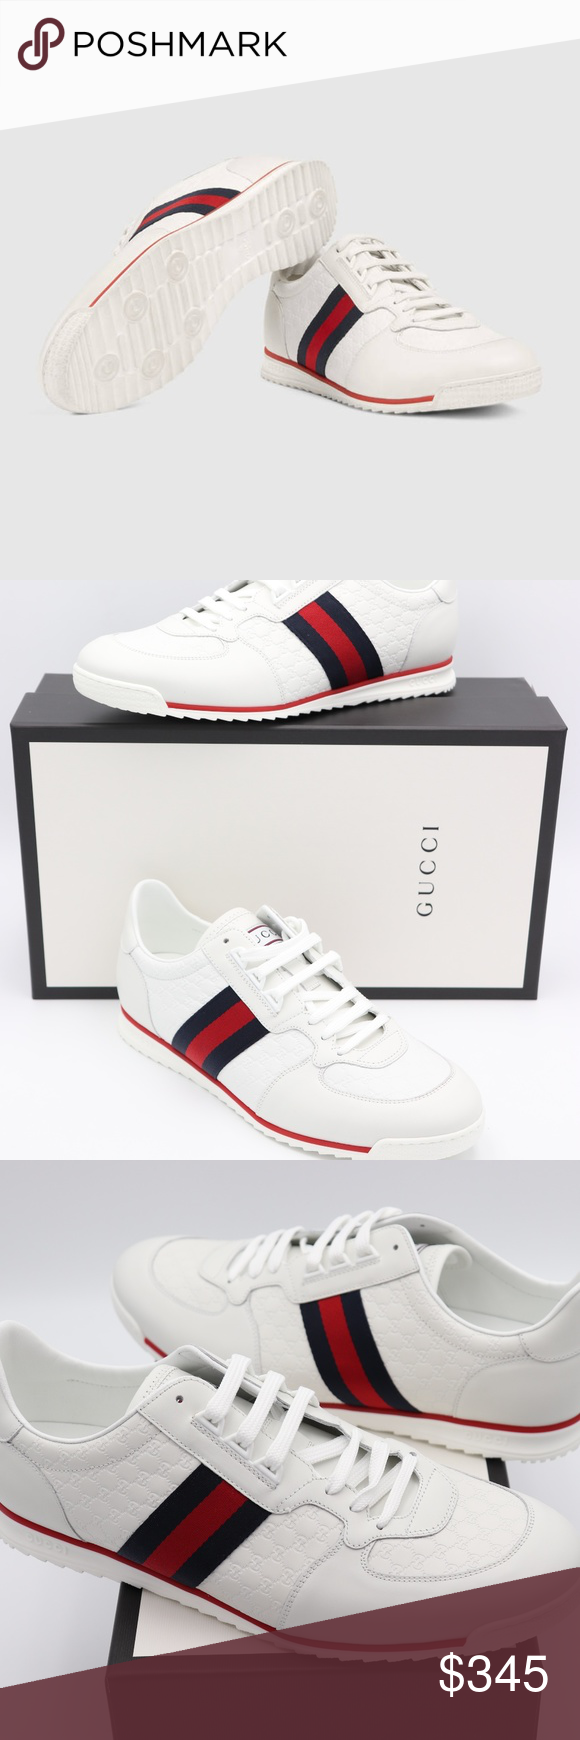 b095b37f1 Gucci Microguccissima Leather Low-top Sneakers NIB Gucci Leather Sneaker  with Web Brand New in